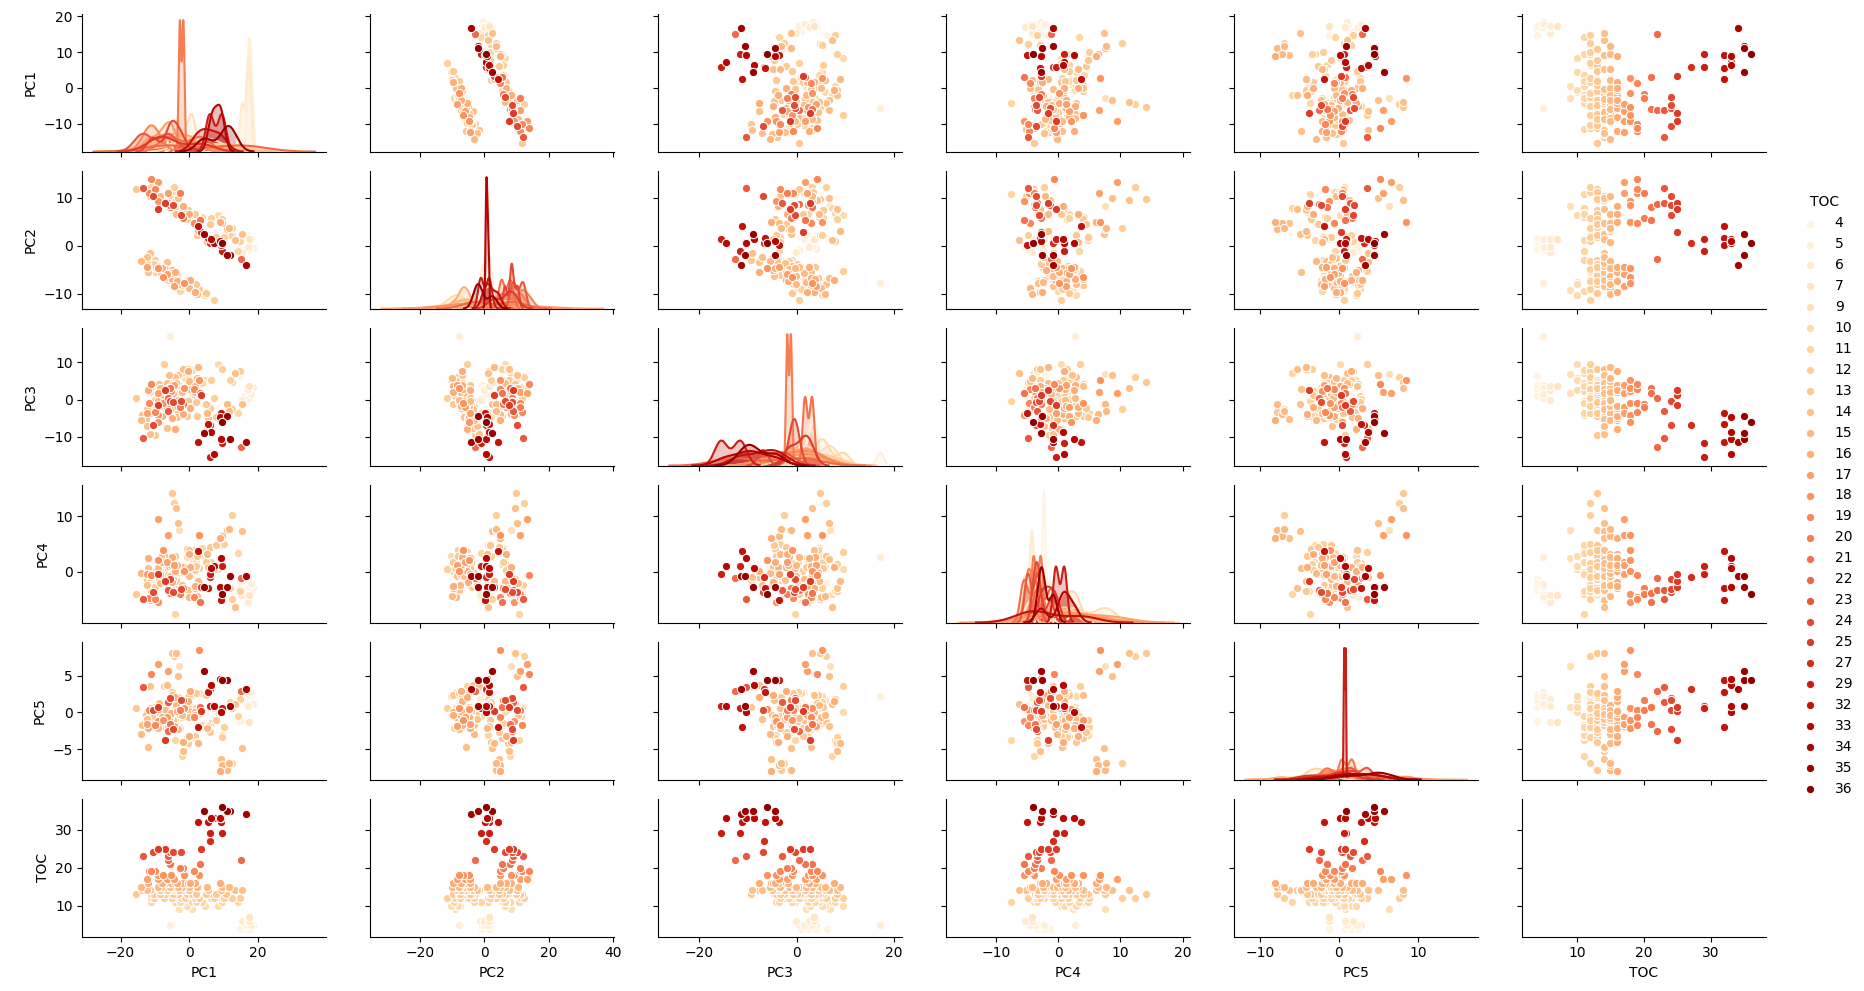 NIR data correlograms with Seaborn in Python